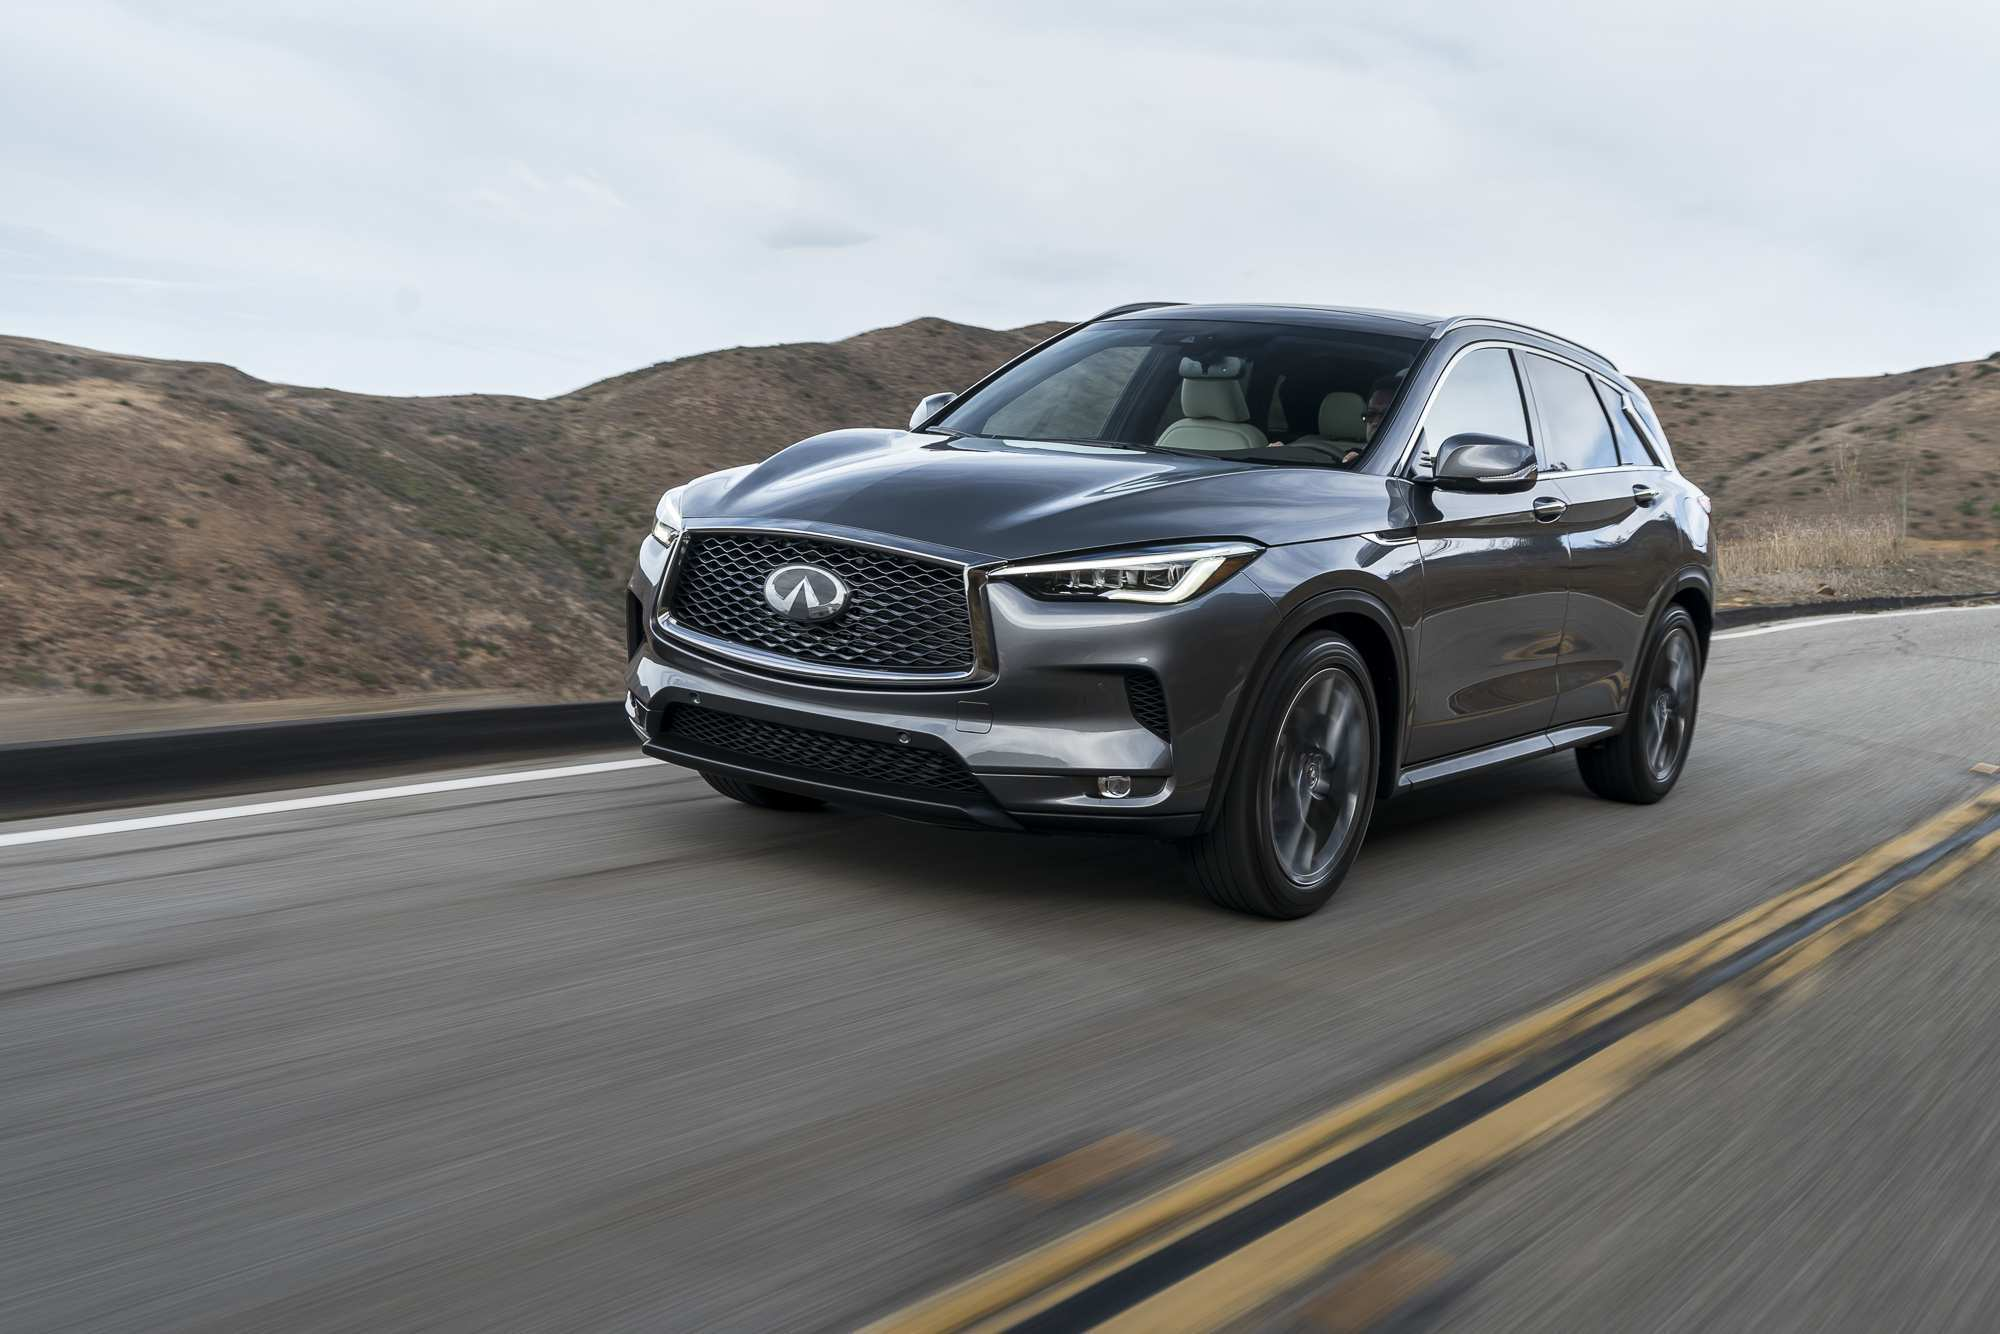 59 New New 2019 Infiniti Qx50 New Review Pictures for New 2019 Infiniti Qx50 New Review